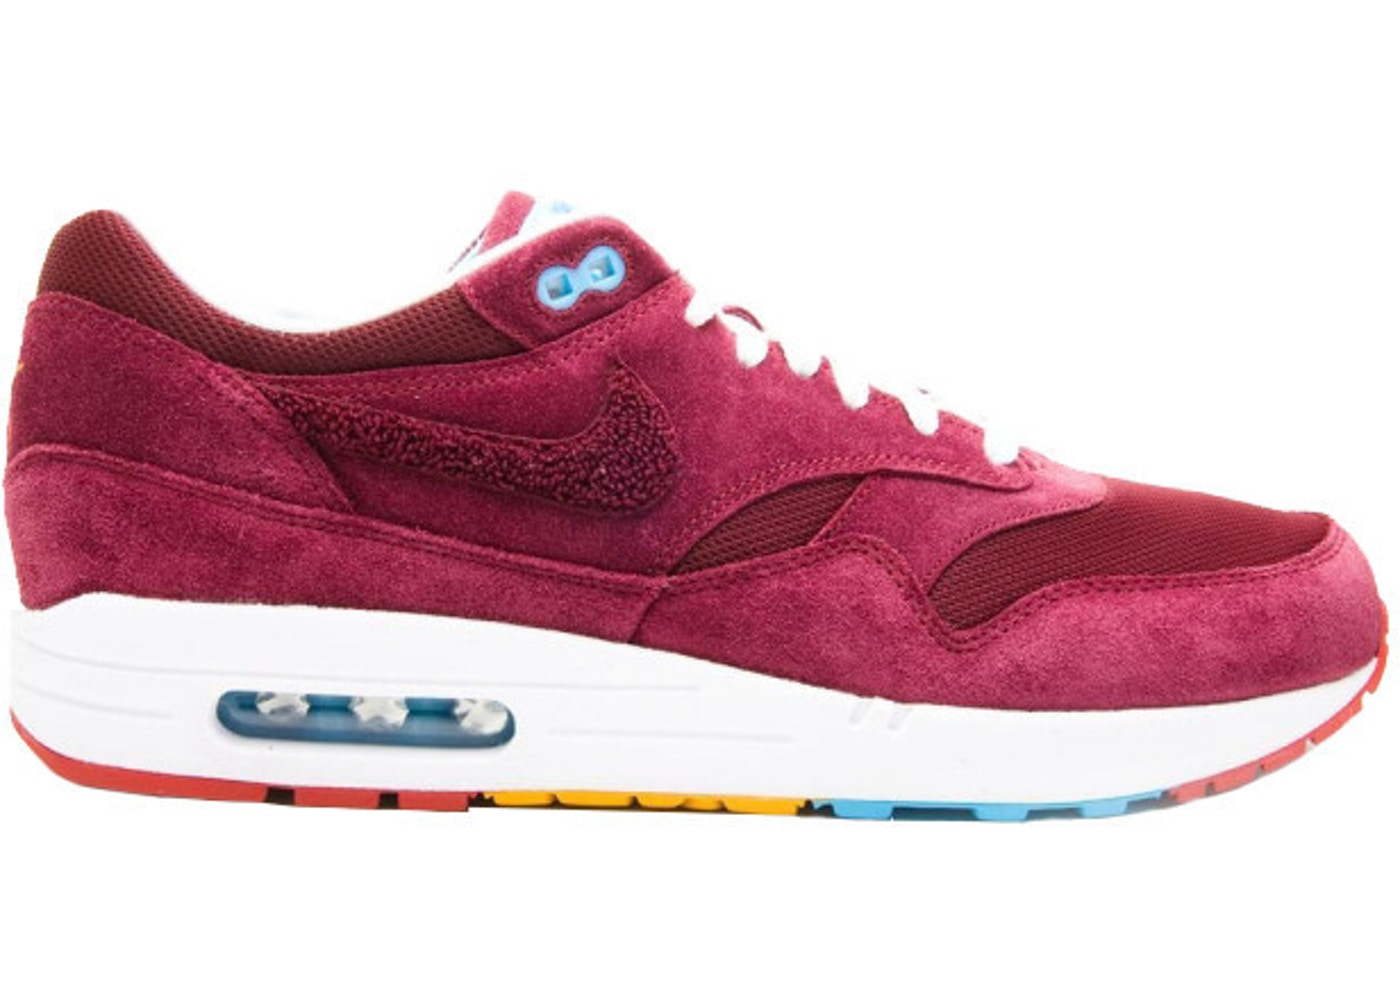 new style d3111 f6225 Buy Nike Air Max 1 Shoes   Deadstock Sneakers